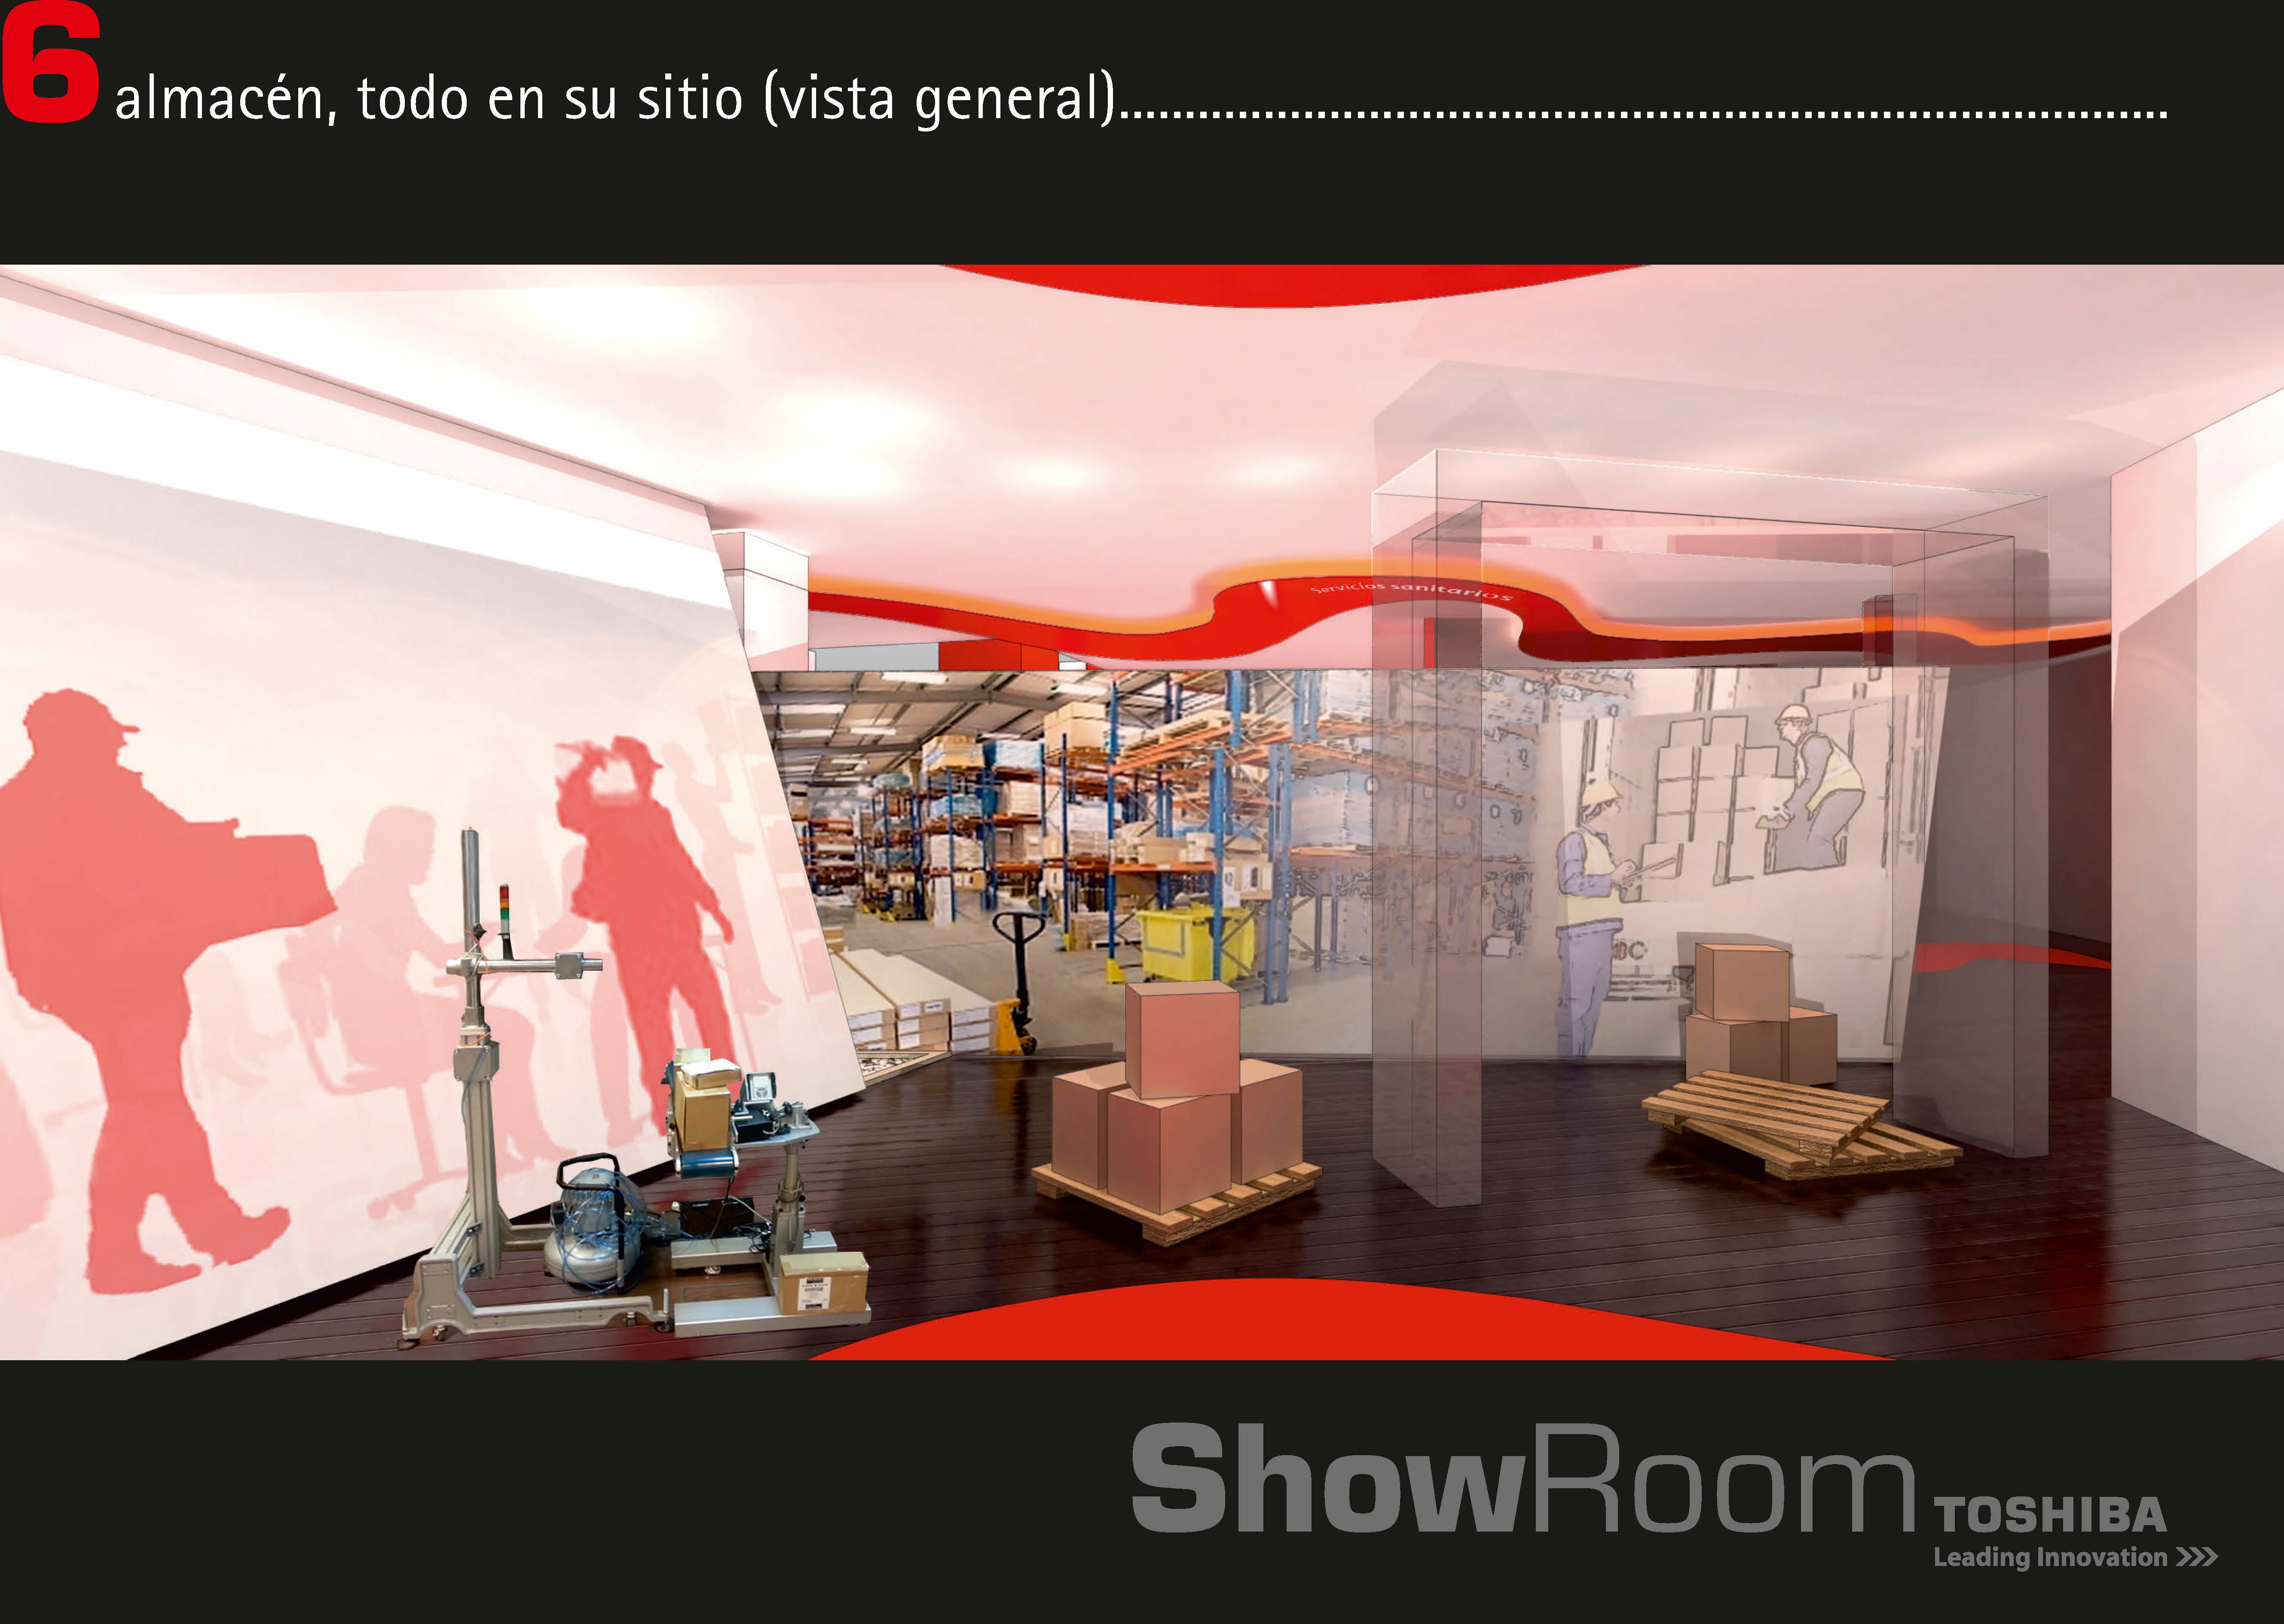 Expo TOSHIBA ShowRoom Madrid 3D (11).jpg